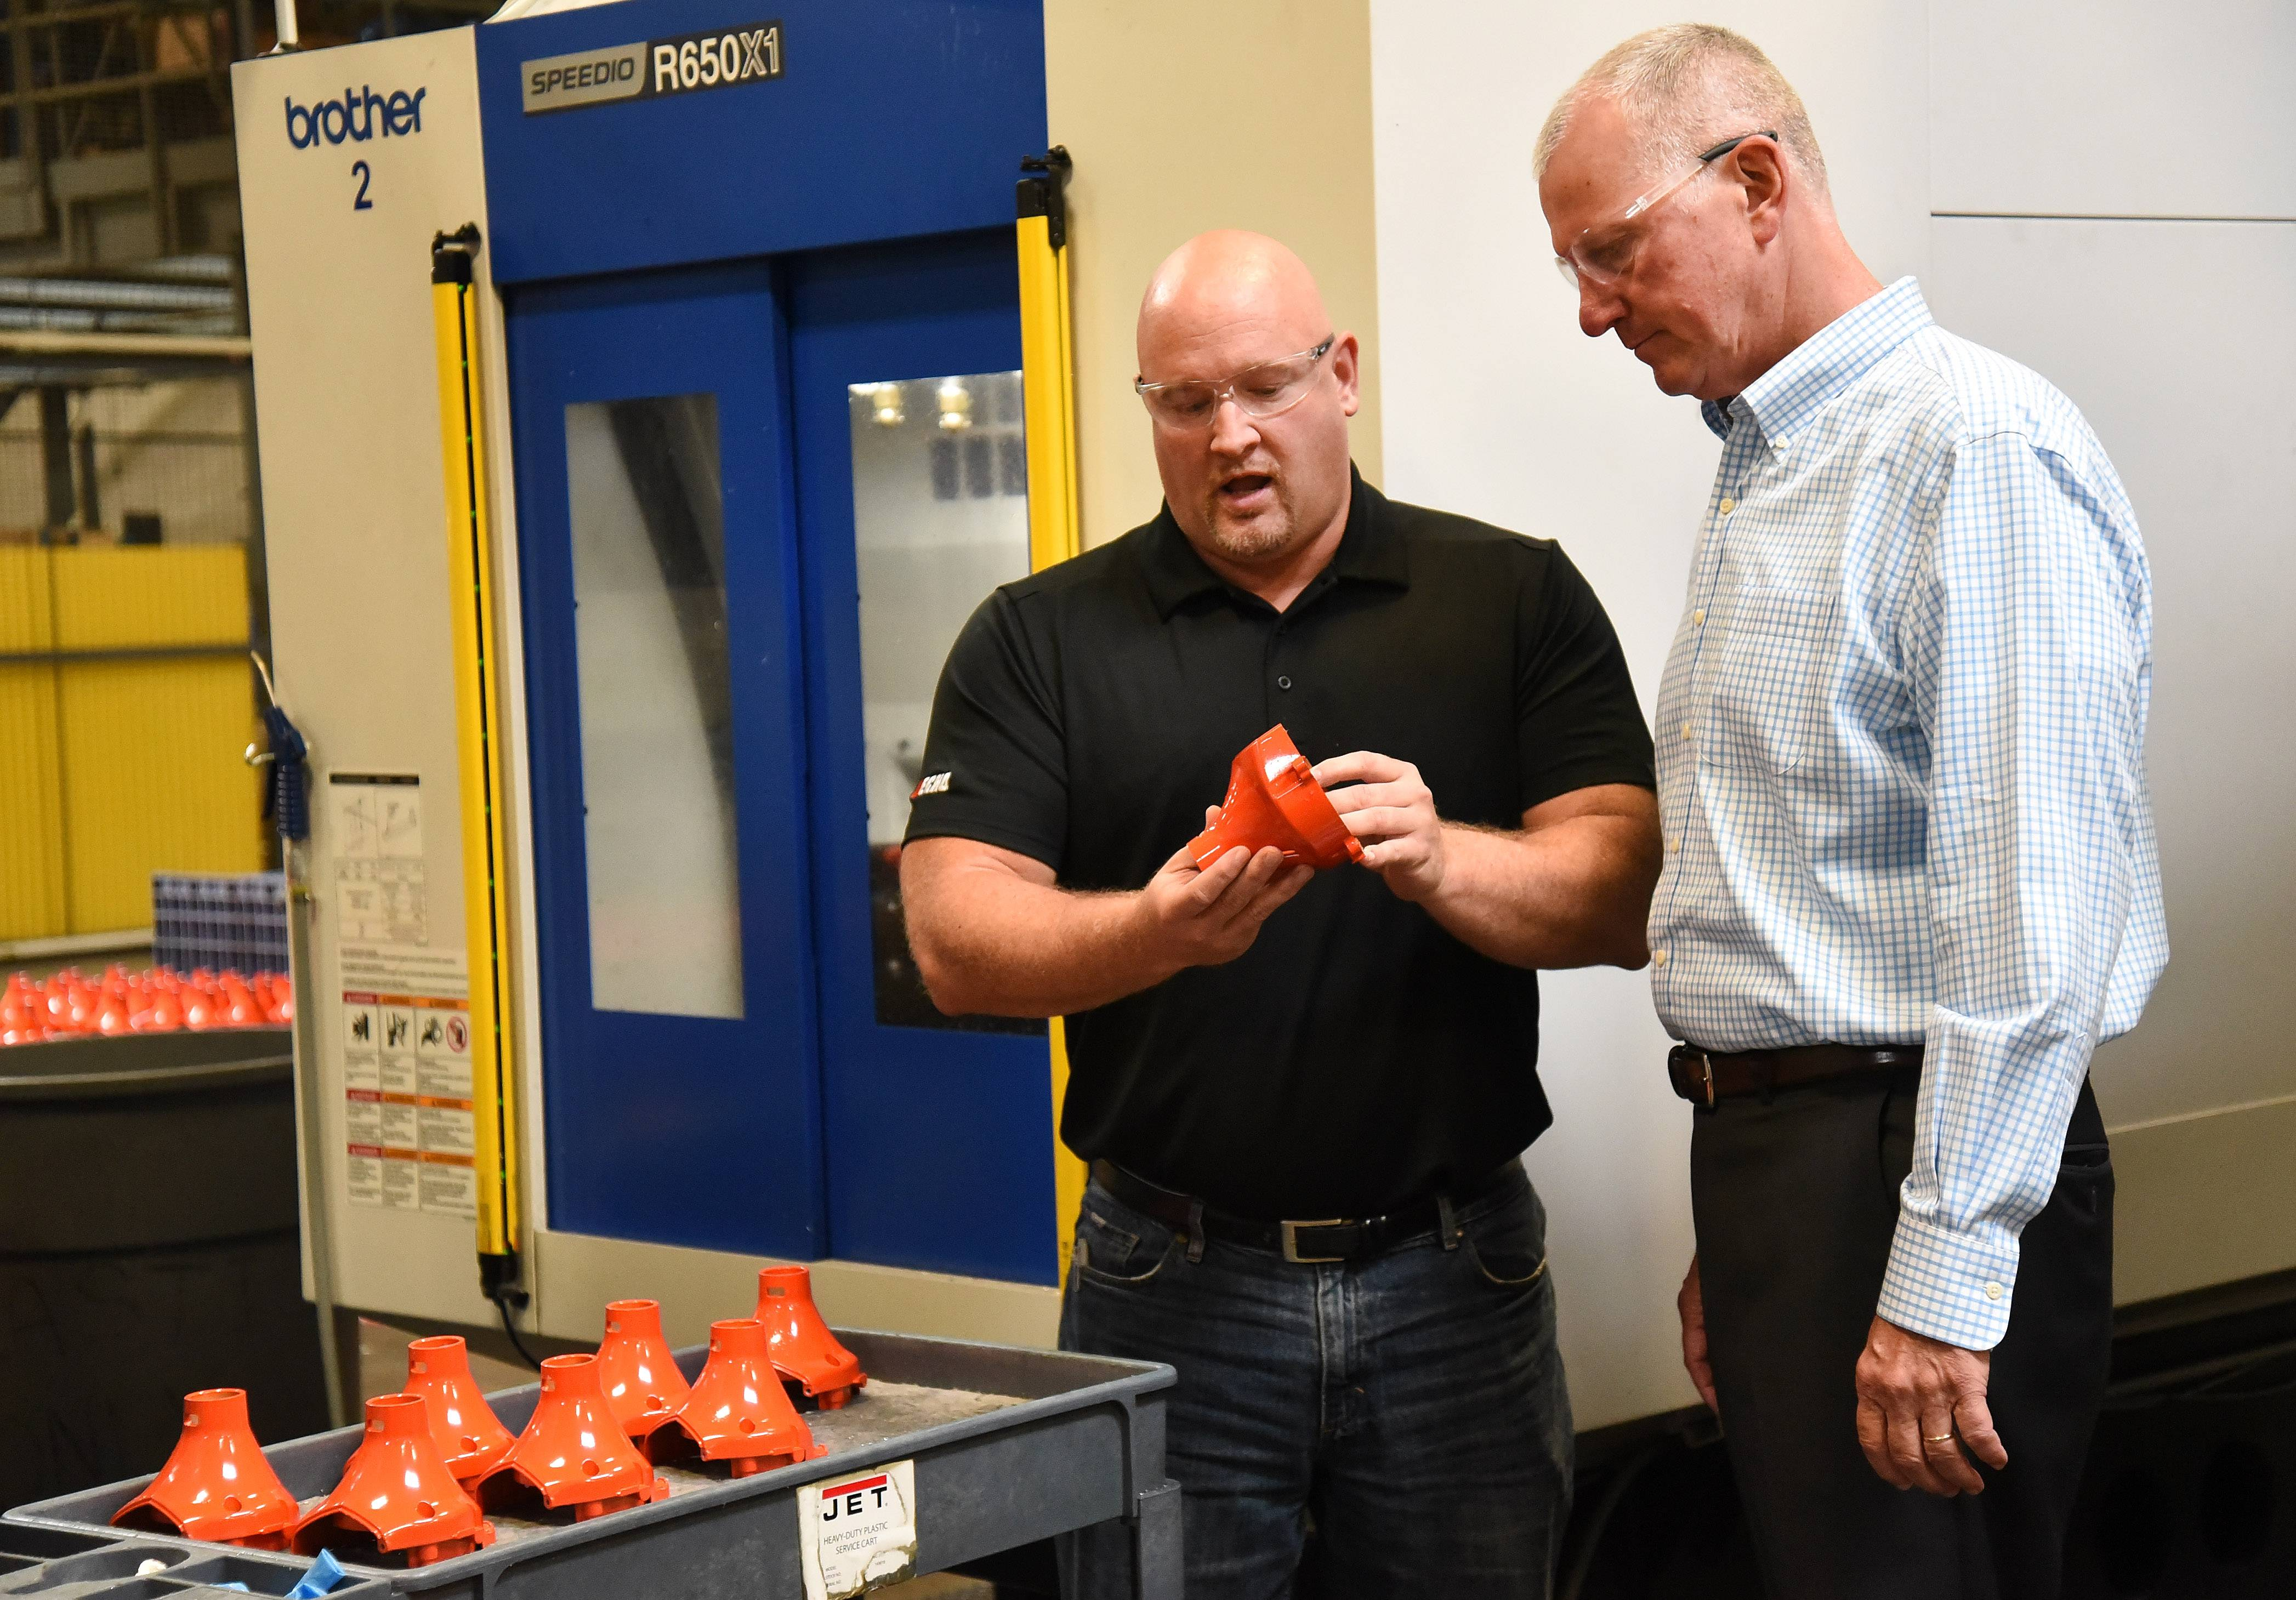 Ryan Ladley, senior director of operations and Tim Dorsey, company president, inspect band covers for trimmers at Echo Inc. in Lake Zurich.